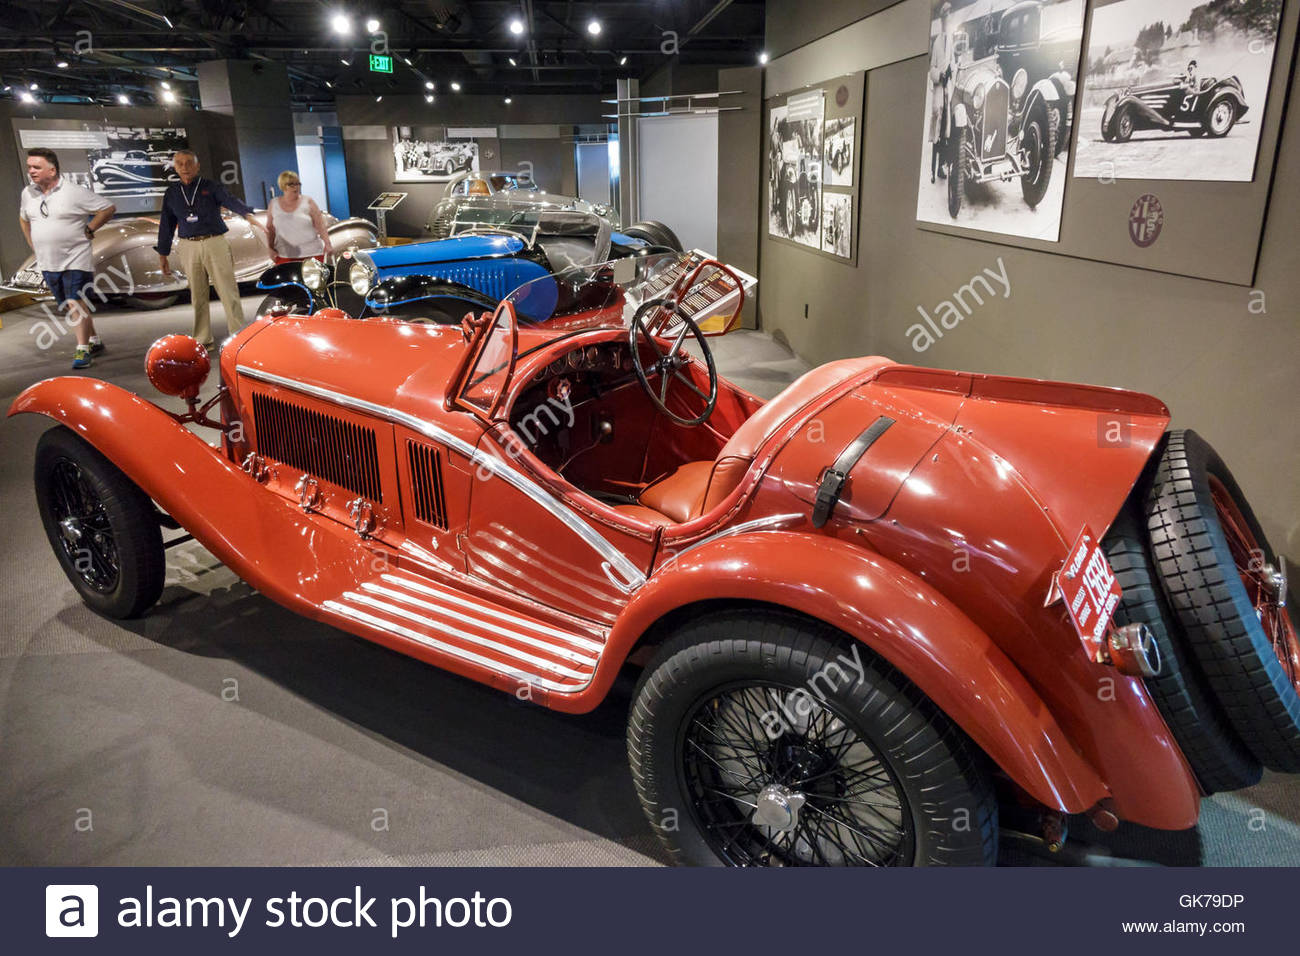 Naples Florida Revs Institute of Automotive Research automotive car museum Miles Collier private collection rare - Stock Image